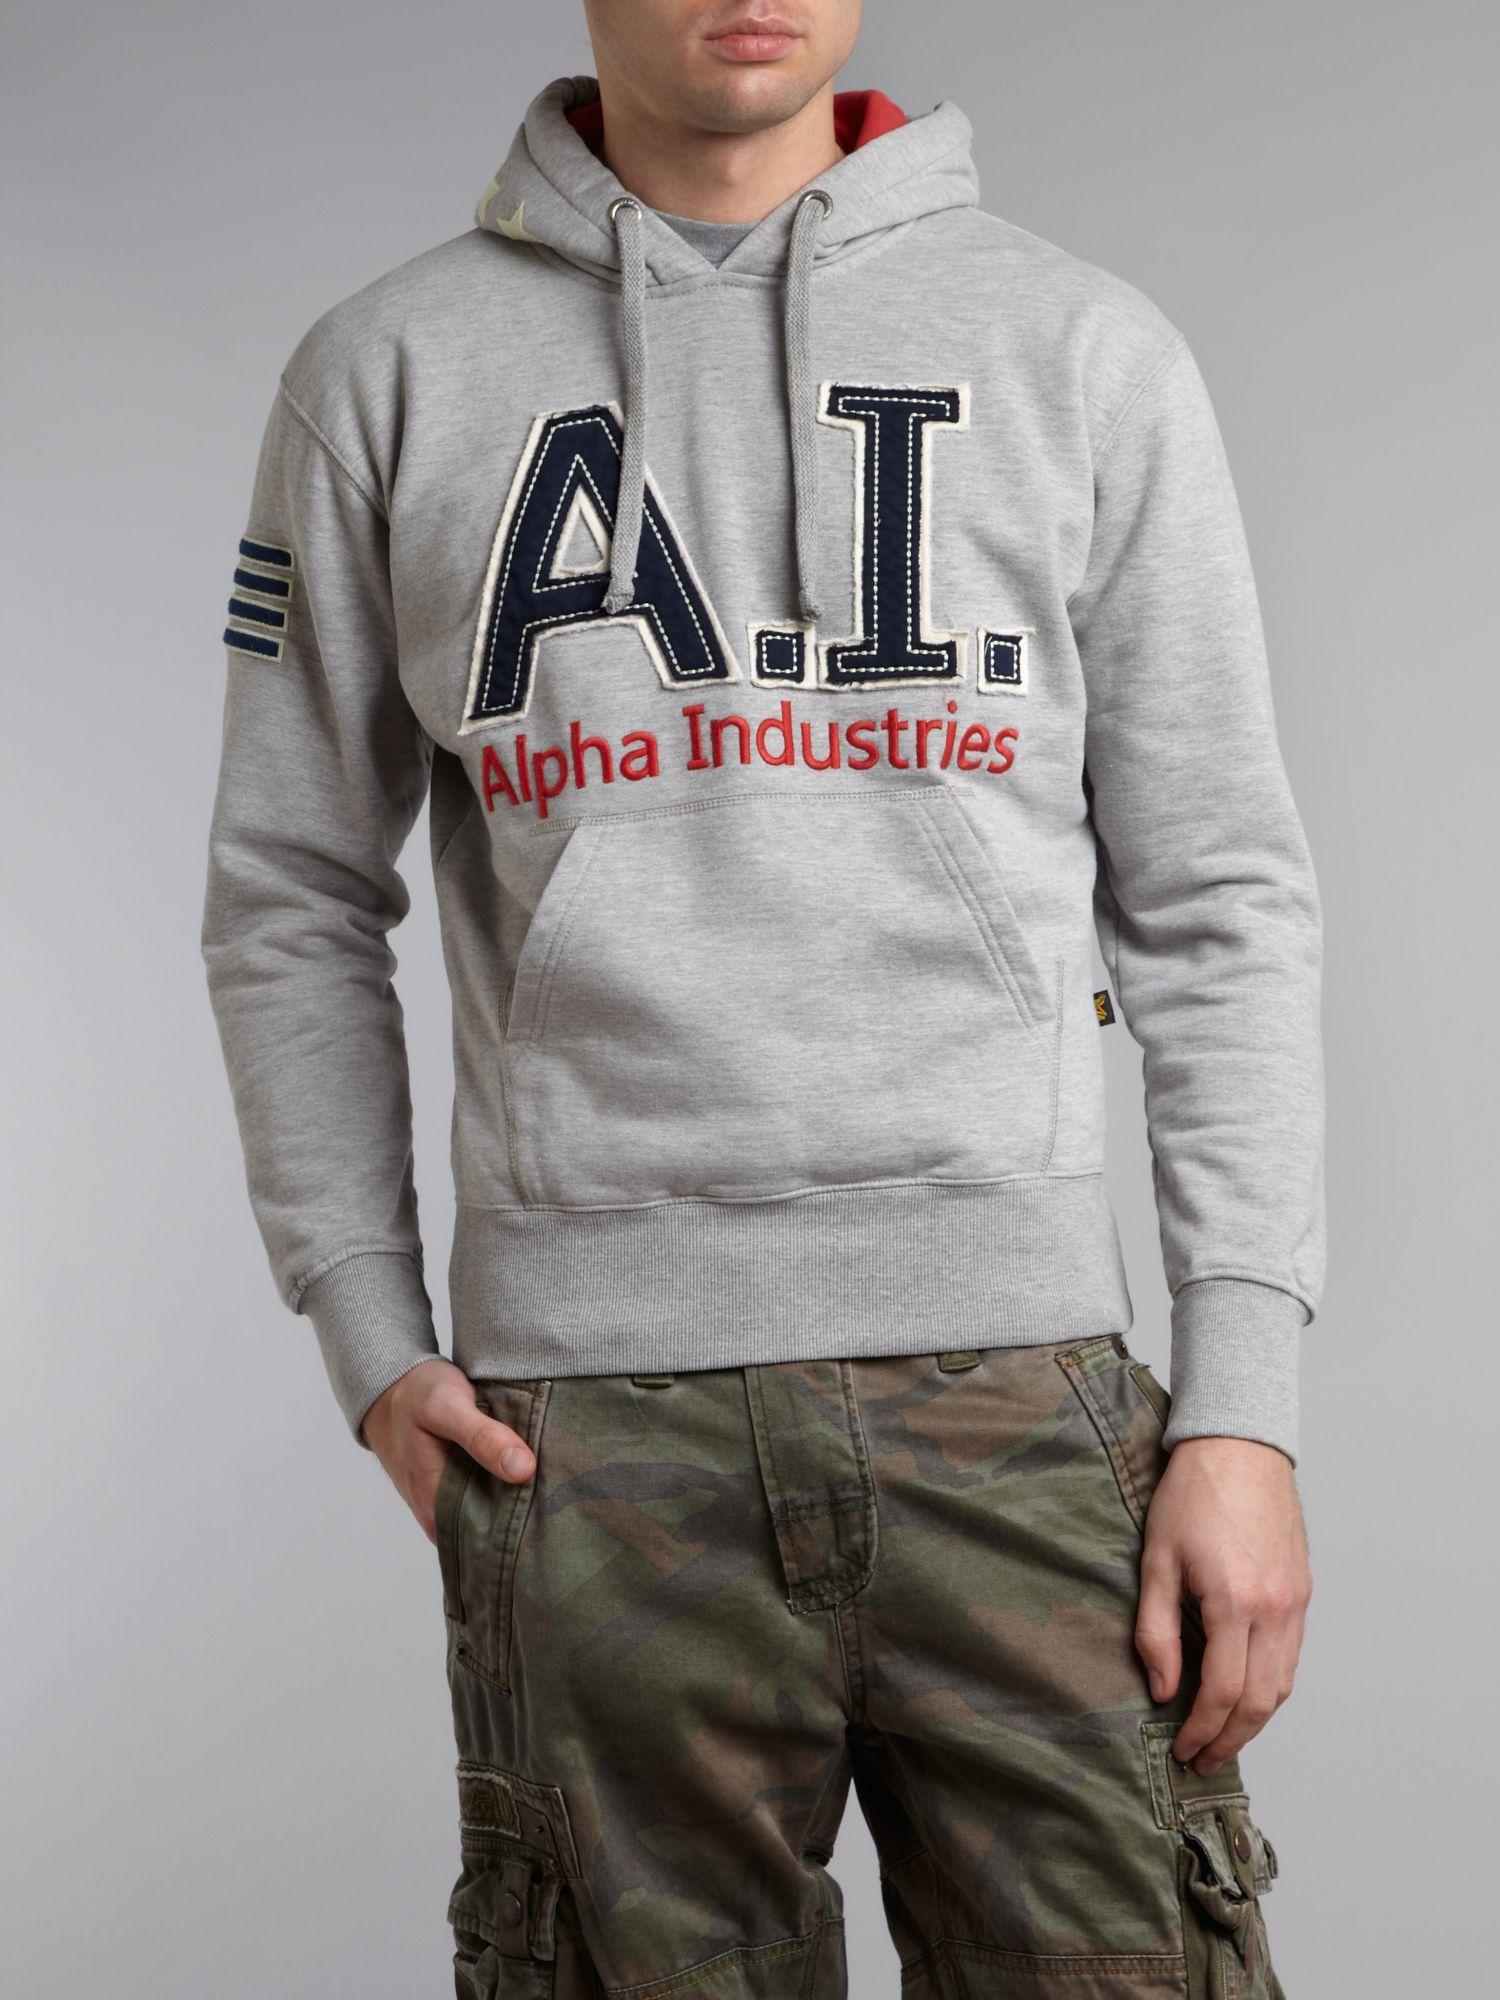 Branded hooded top